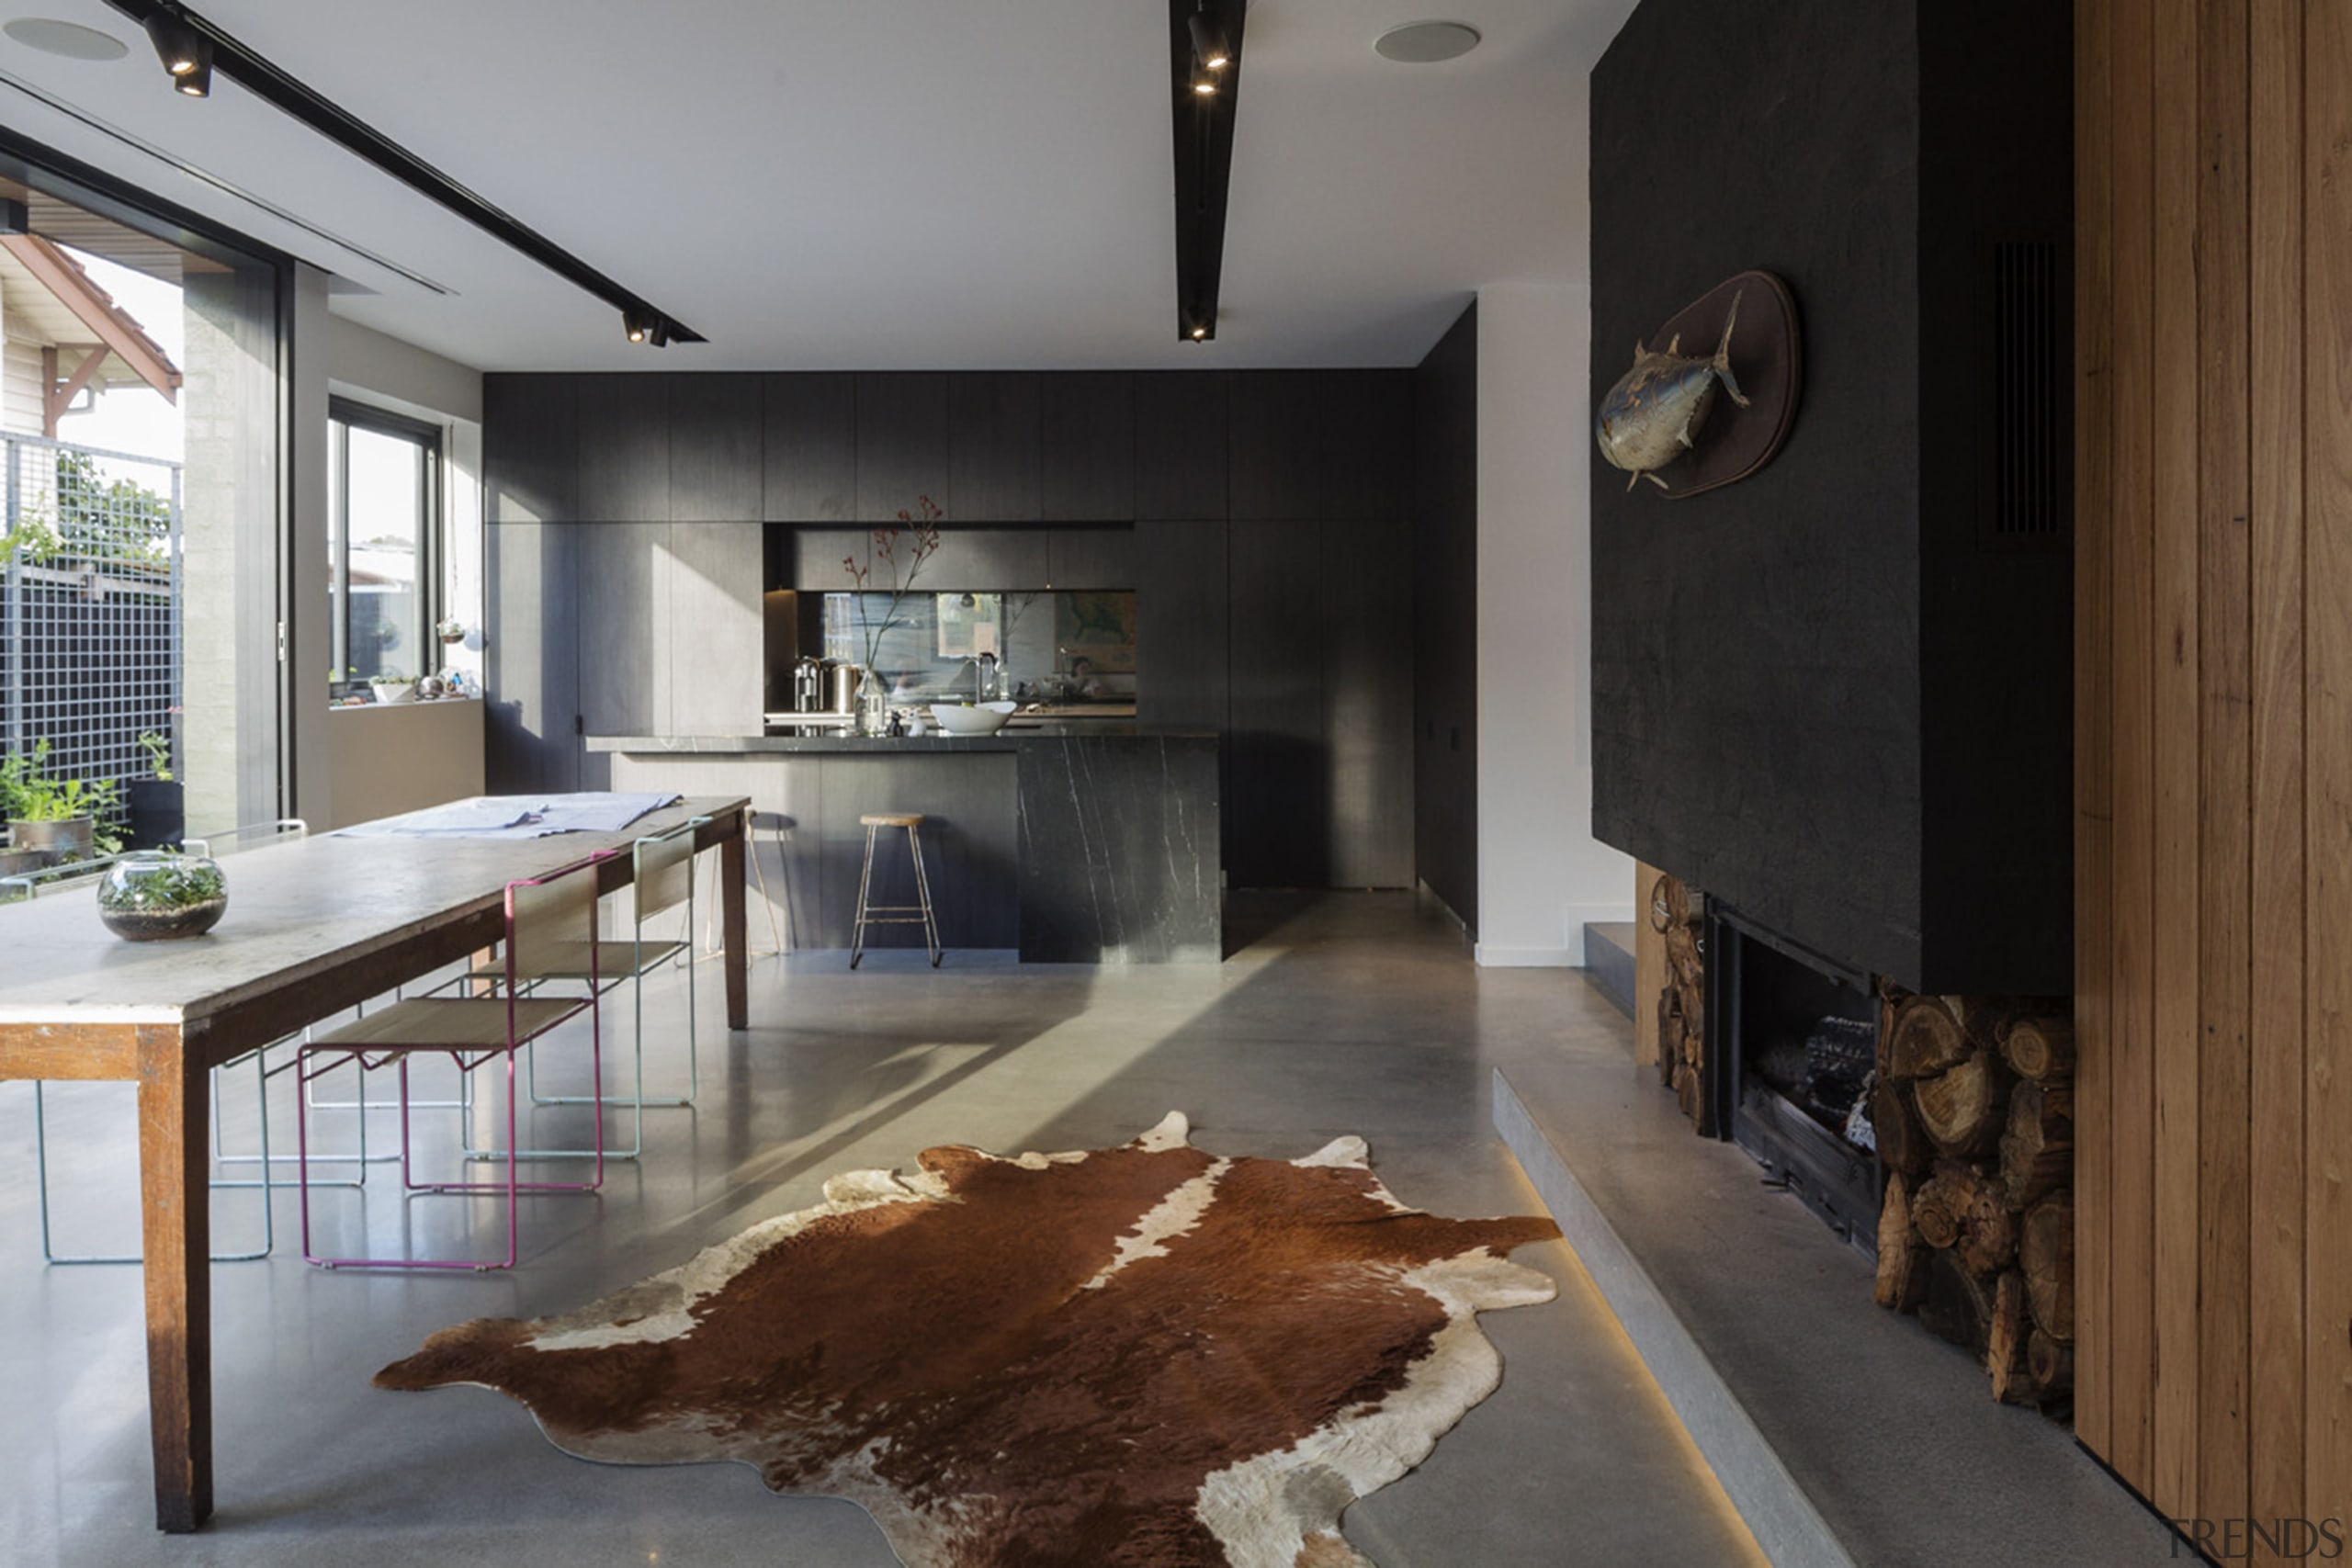 The Best Residential Interior Award at NABD 2015 architecture, house, interior design, gray, brown